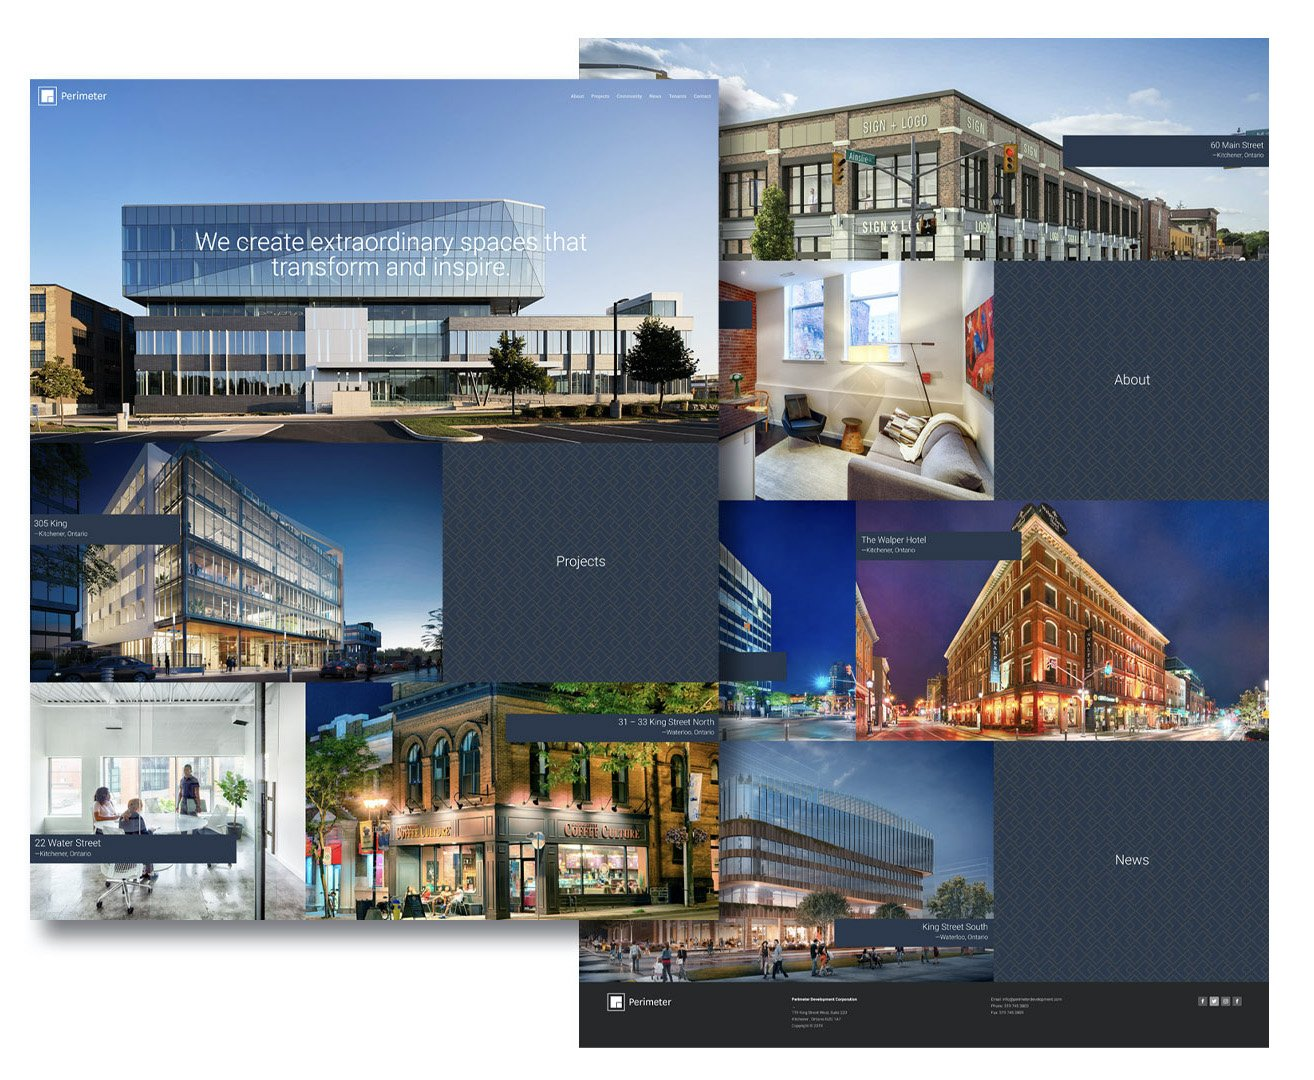 Perimeter Developments website design